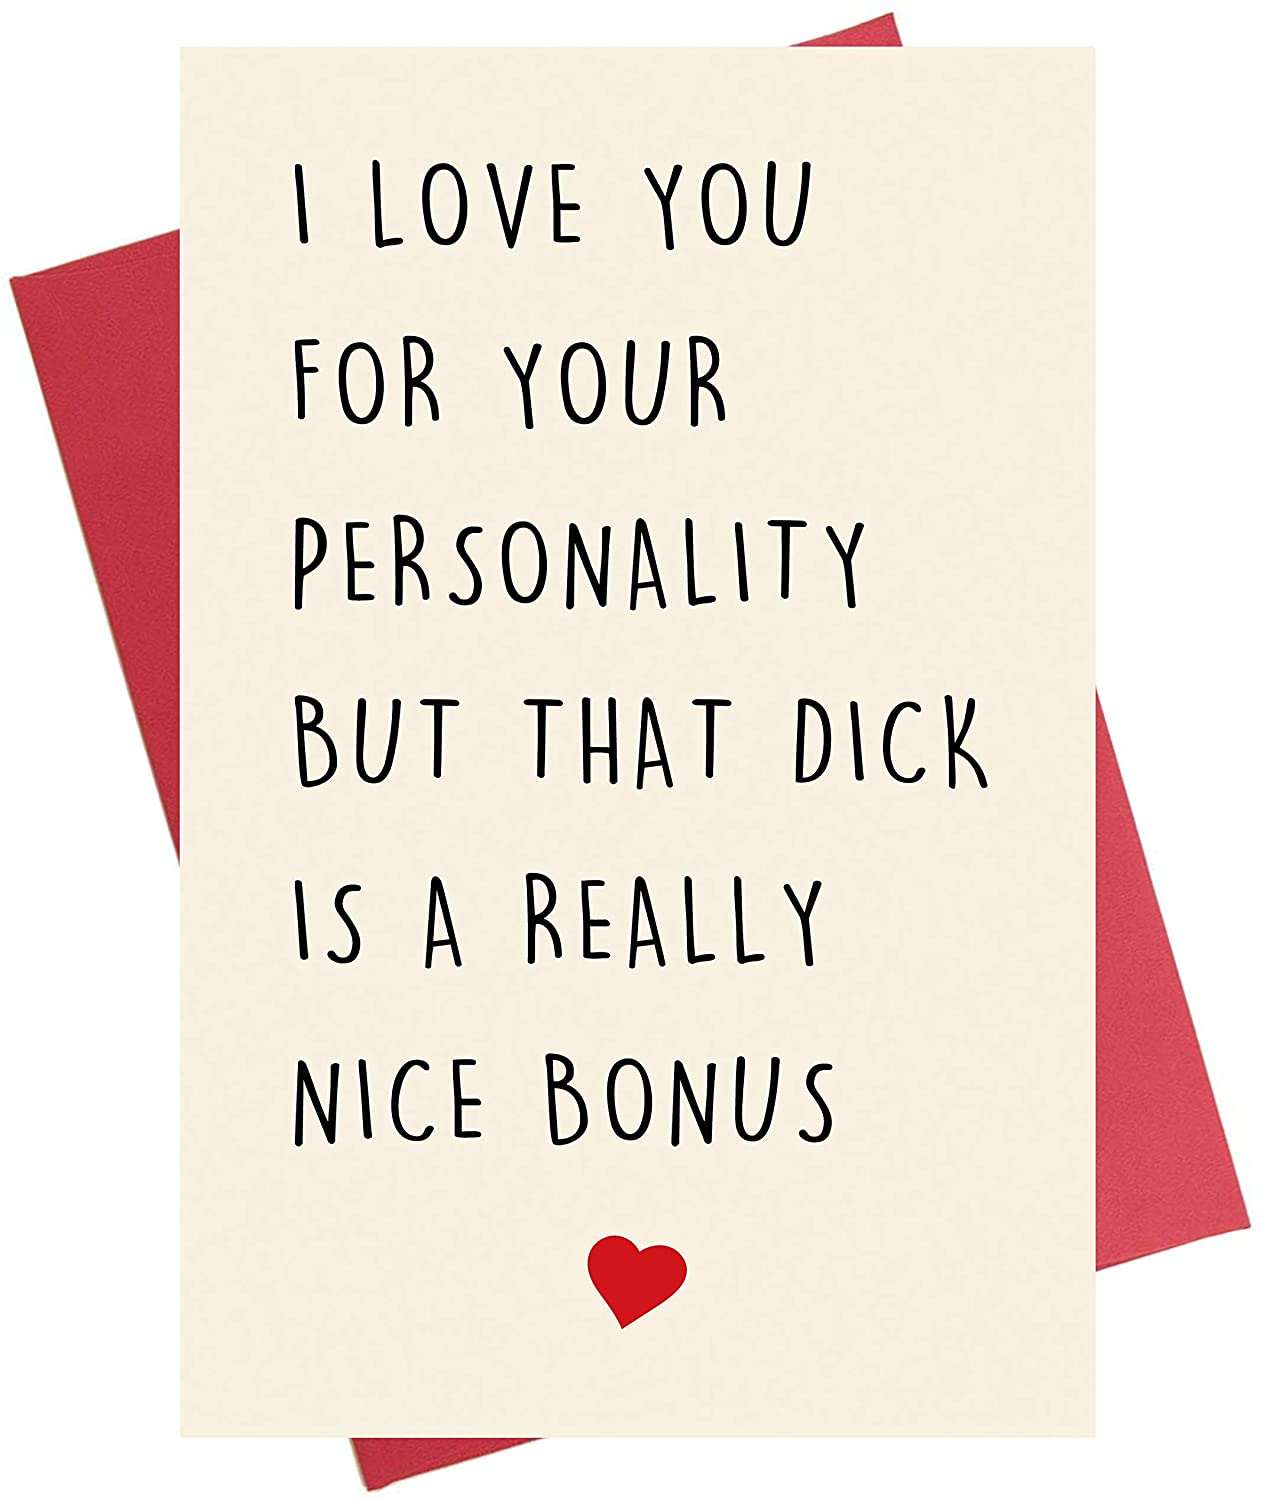 Naughty cards for him on Valentines day